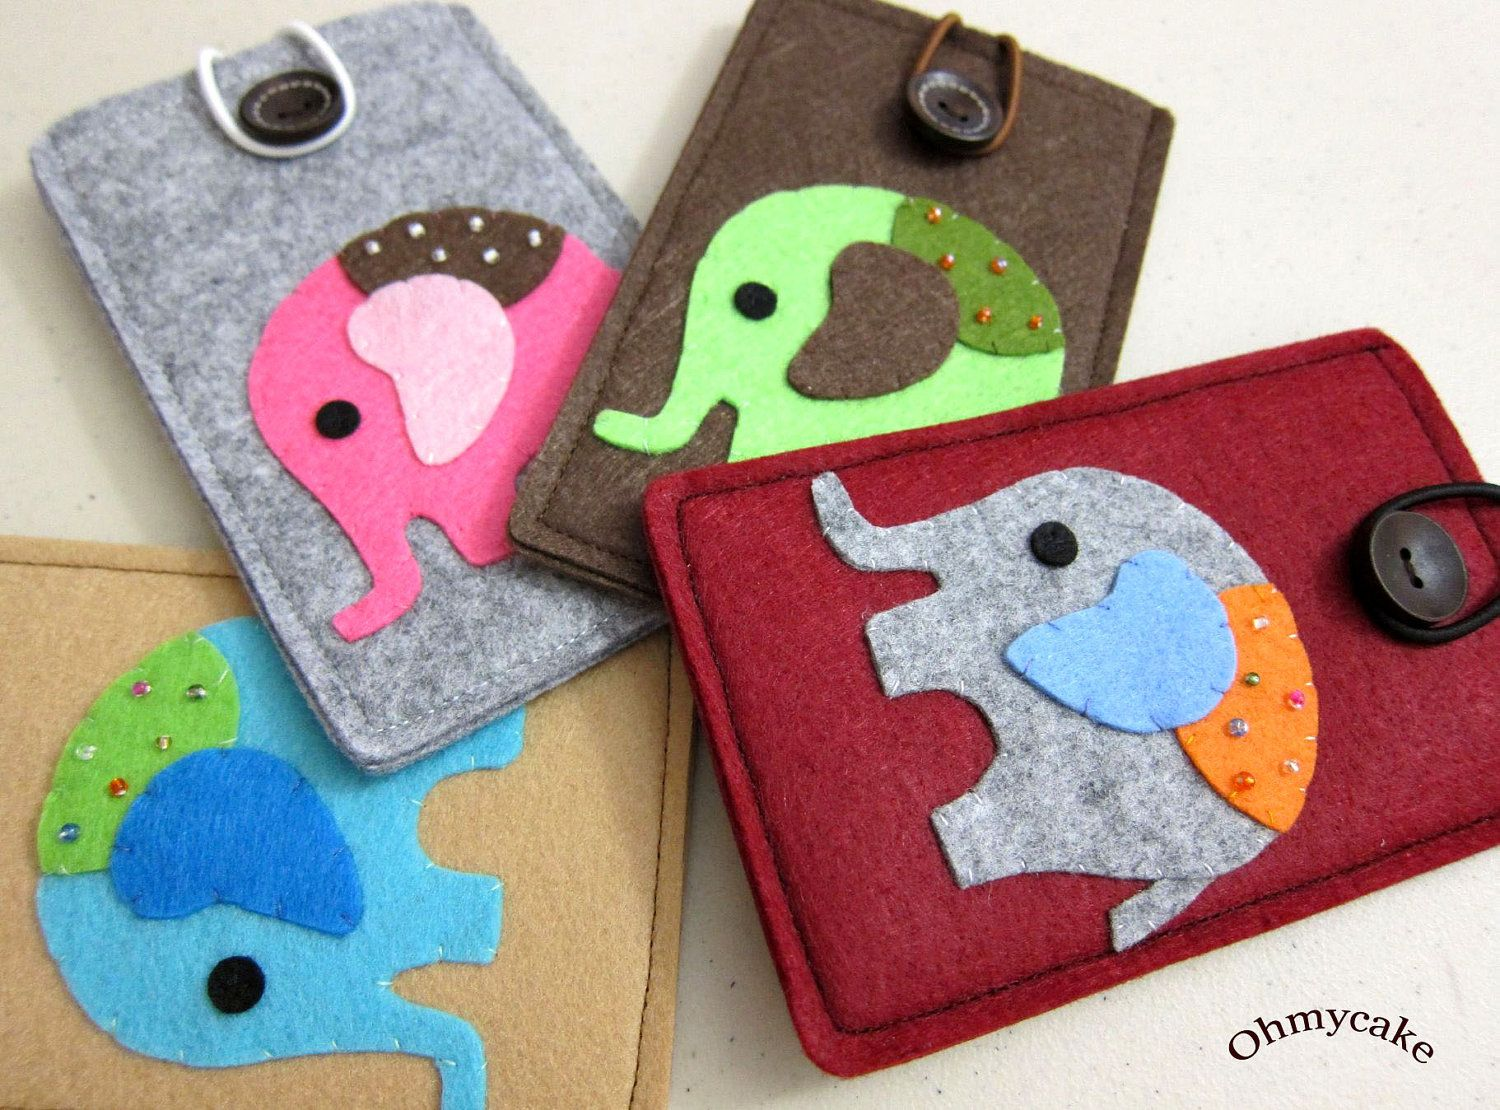 "iPhone Case - Cell Phone Case - iPhone 4 Case - iPod Case - iPod Touch Case - Handmade iPhone Felt Case - "" Green Elephant "" Design. $18.00, via Etsy."